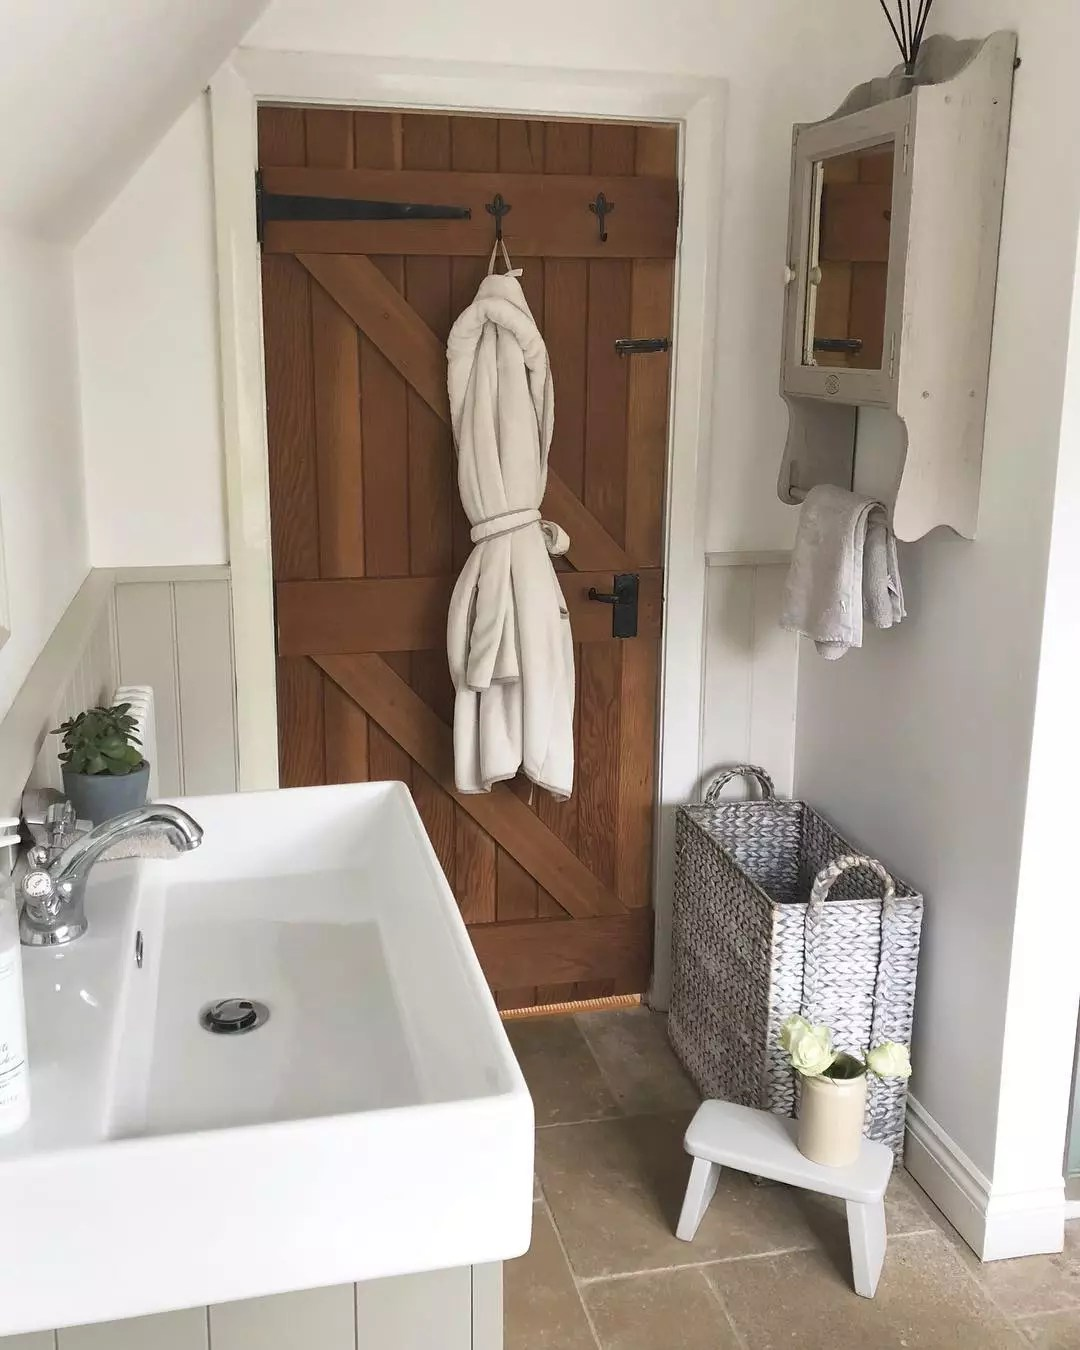 Farmhouse-style bathroom with wooden barn door. Photo by Instagram user from_coast_to_country_home